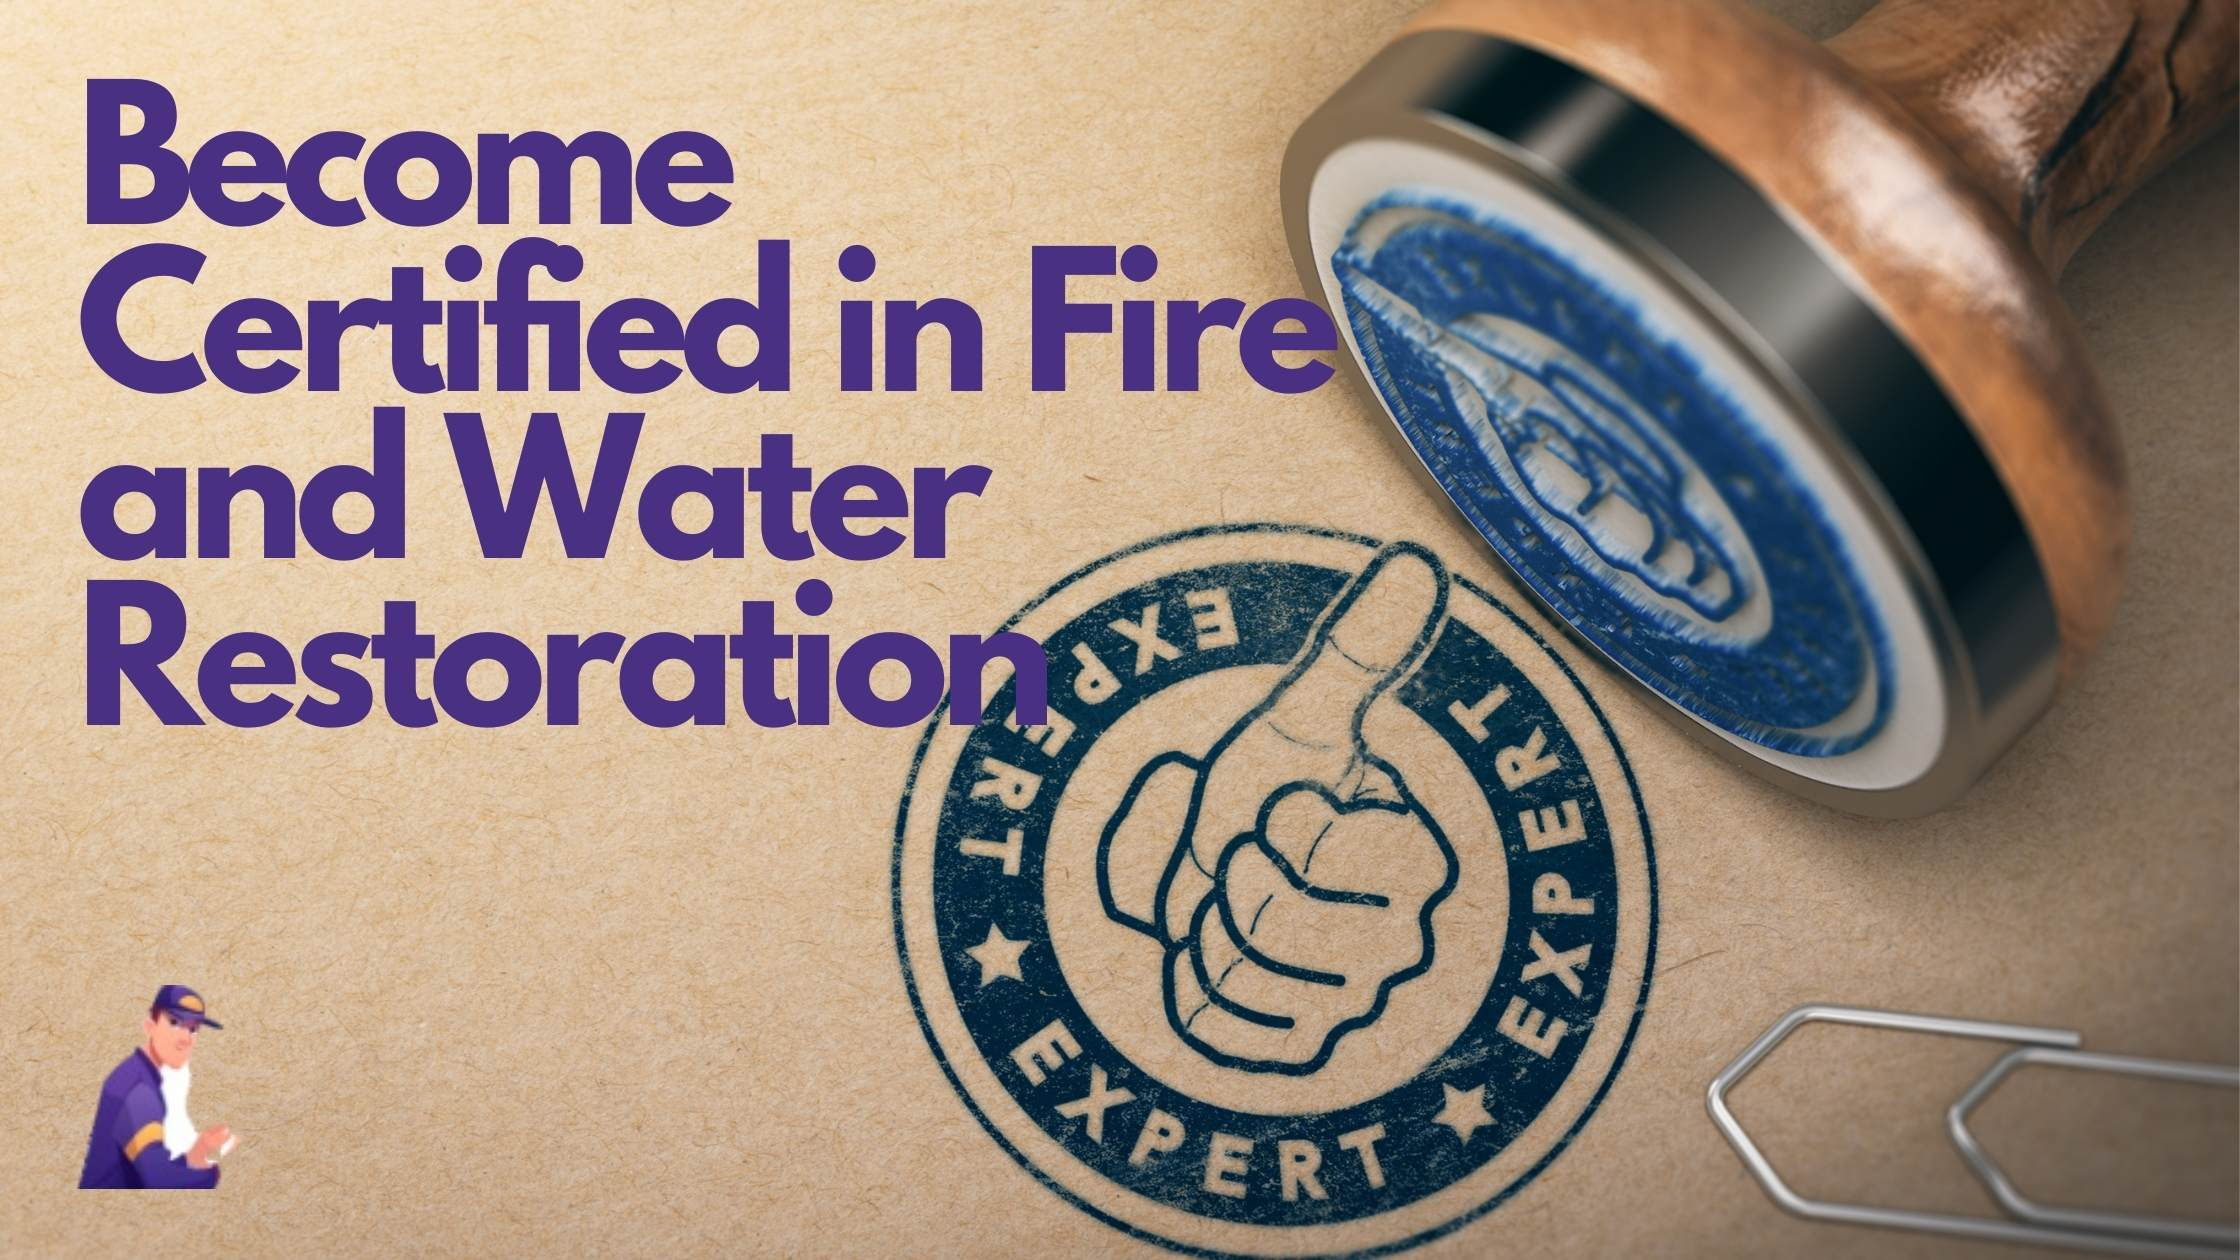 Become Certified in Fire and Water Restoration